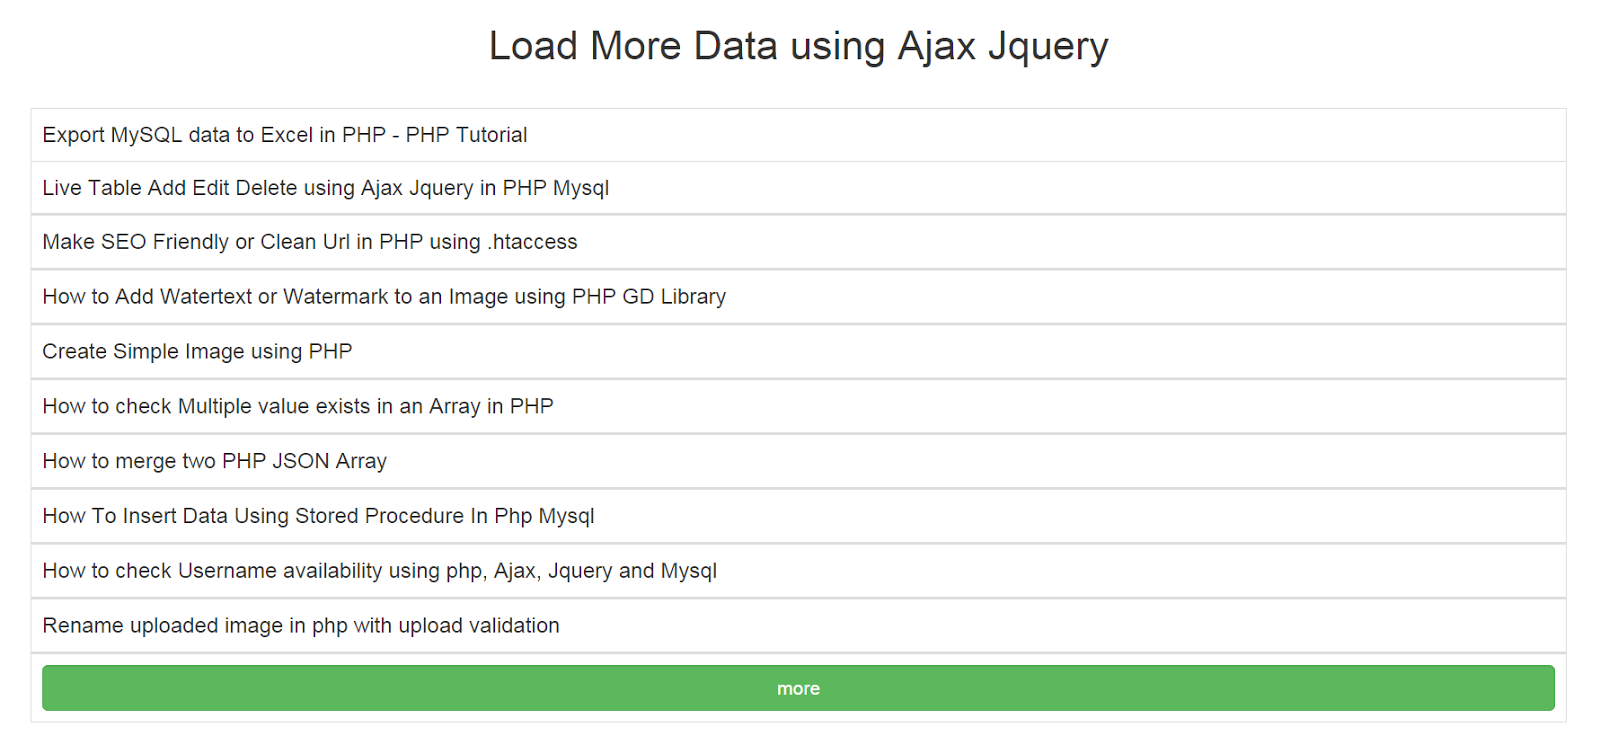 How to Load More Data using Ajax Jquery | Webslesson